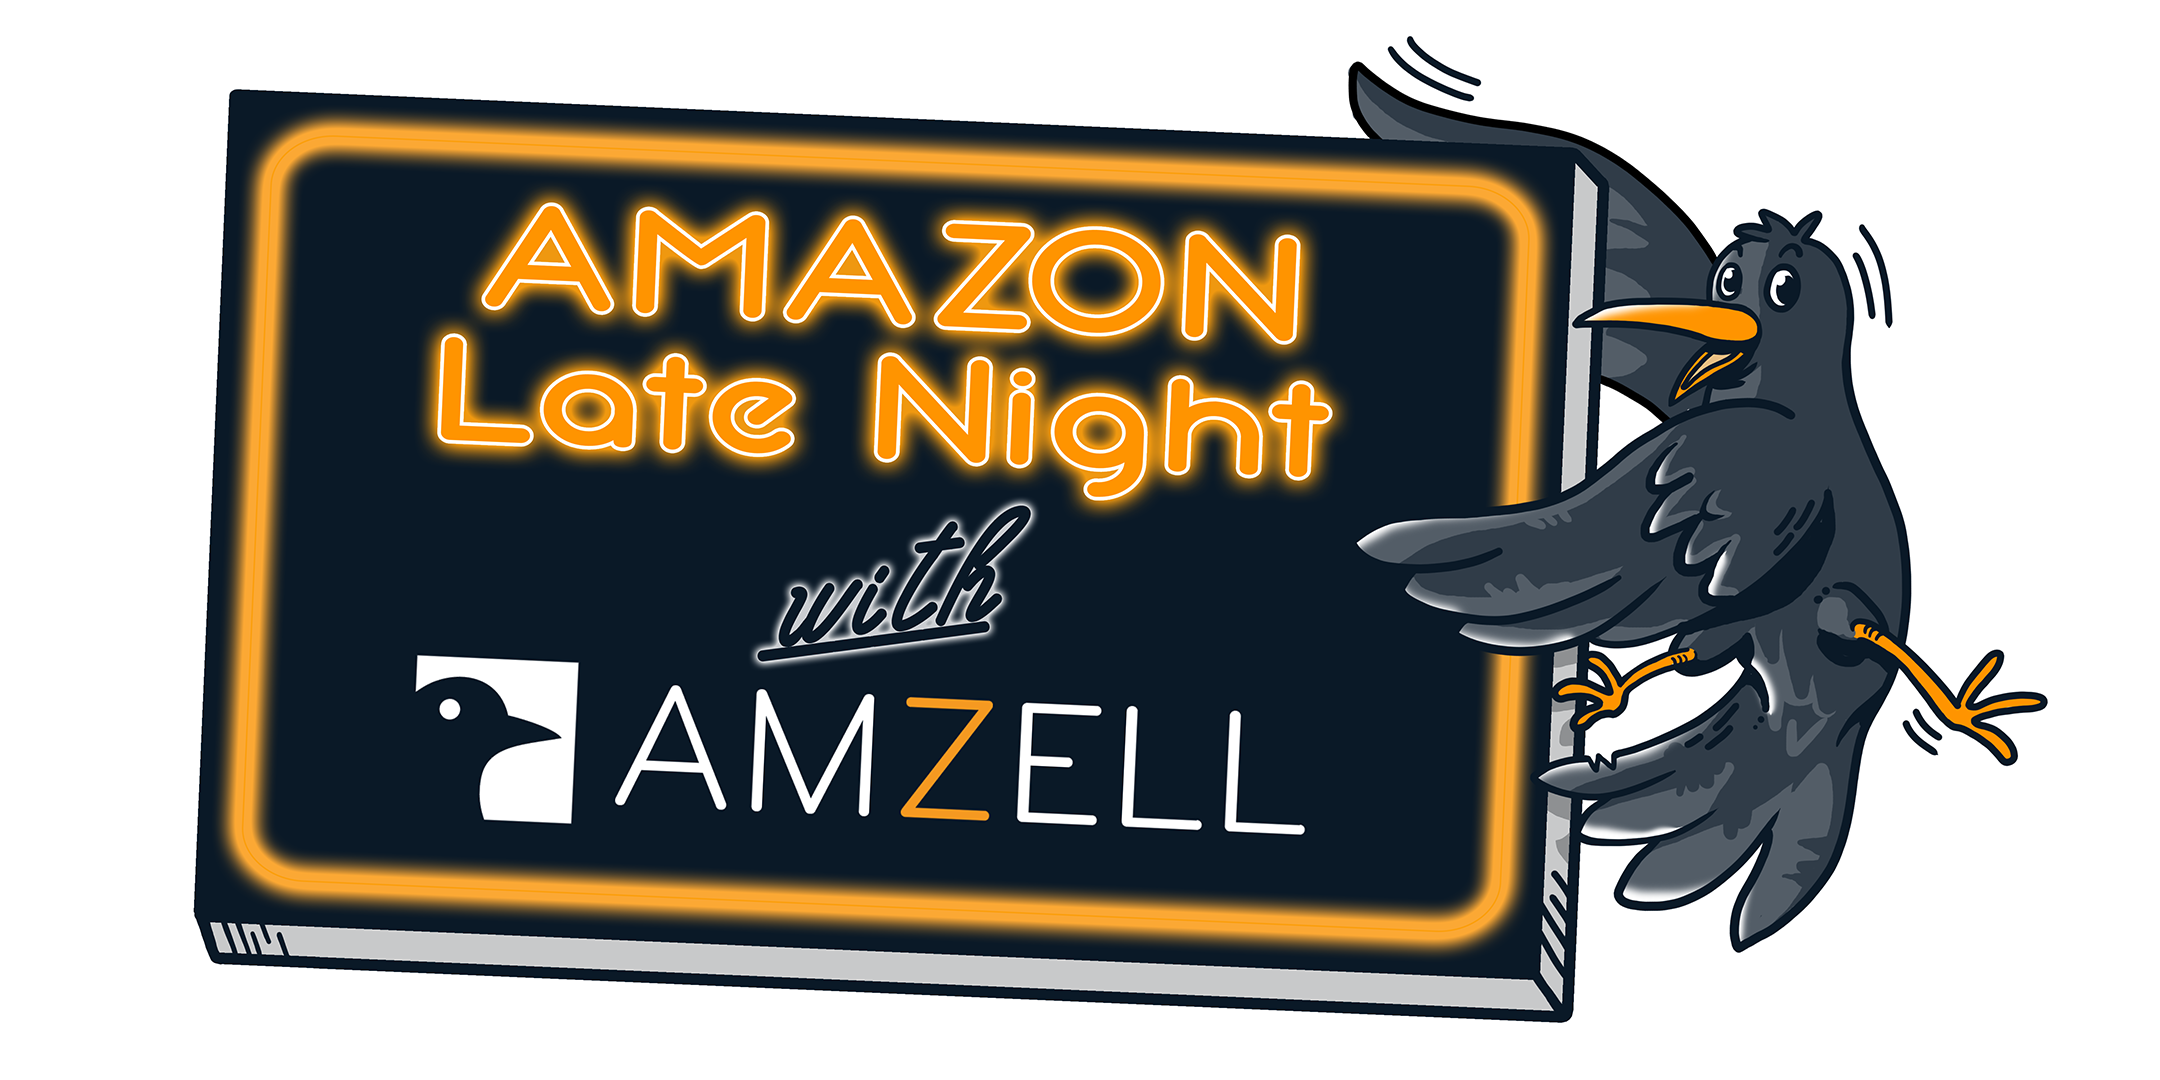 AMAZON Late Night with AMZELL